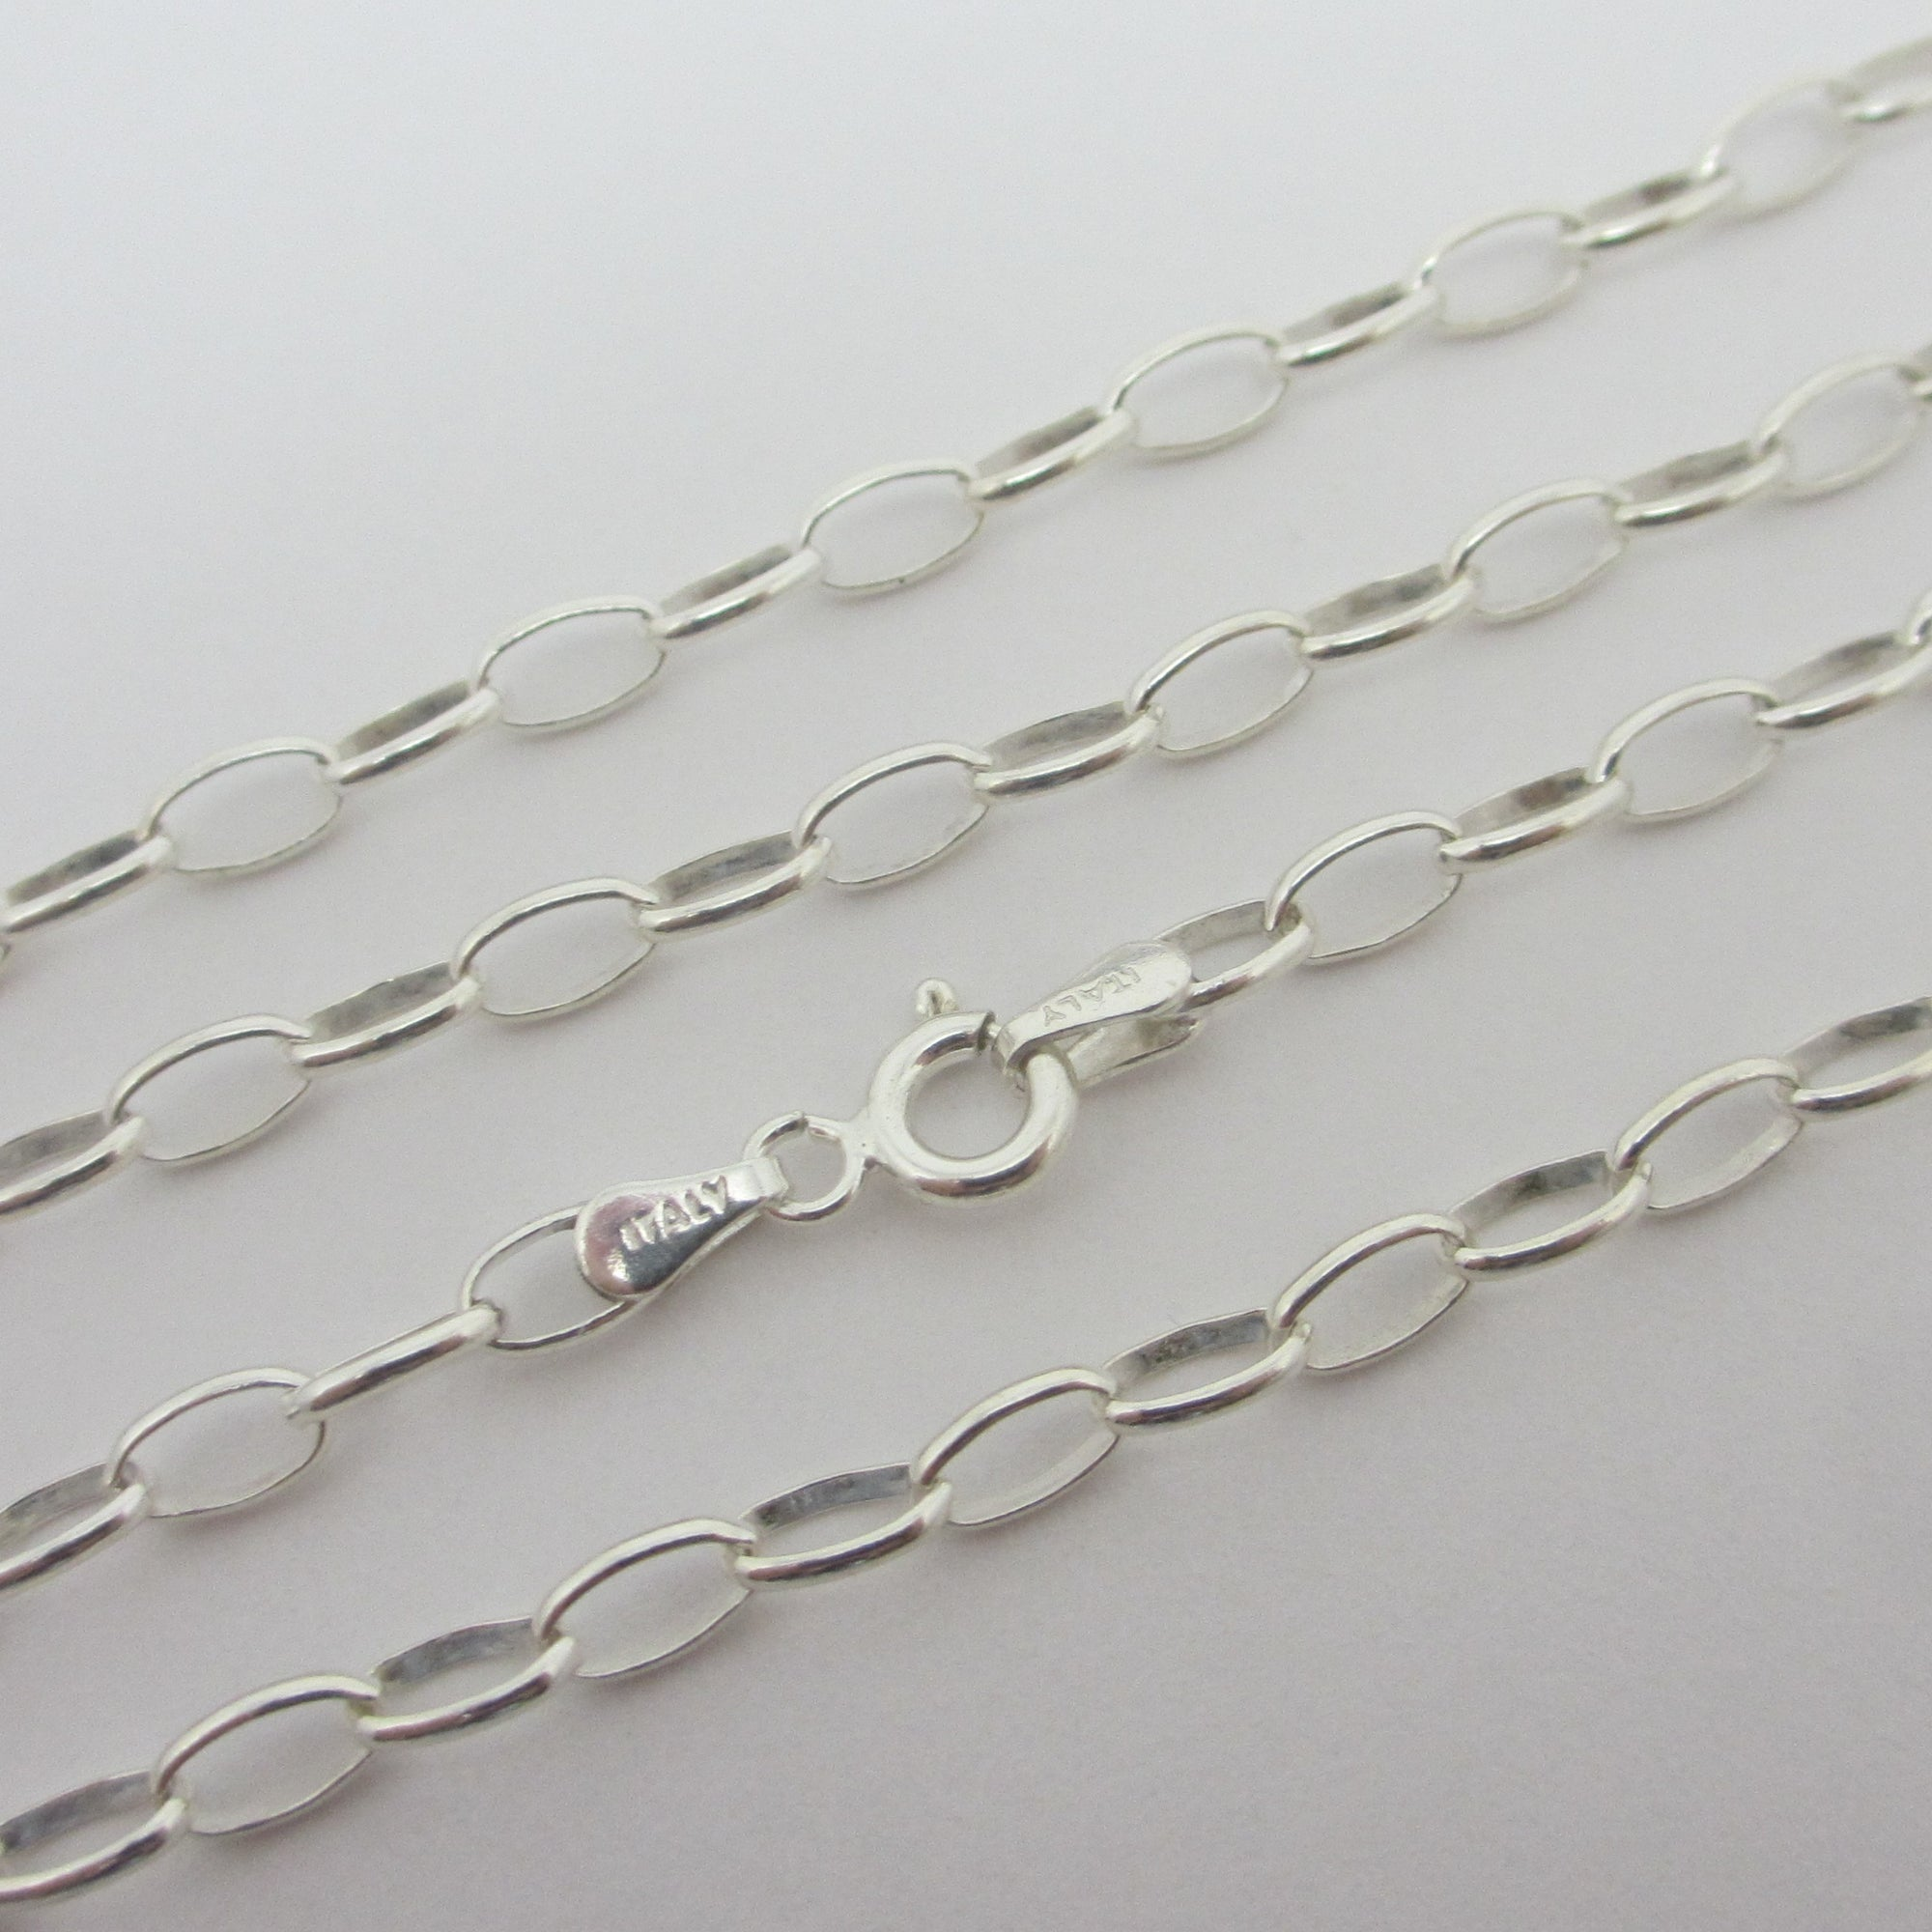 "Cable Link Sterling Silver Chain Necklace 55.0cm / 21.6"" Vintage c1980"